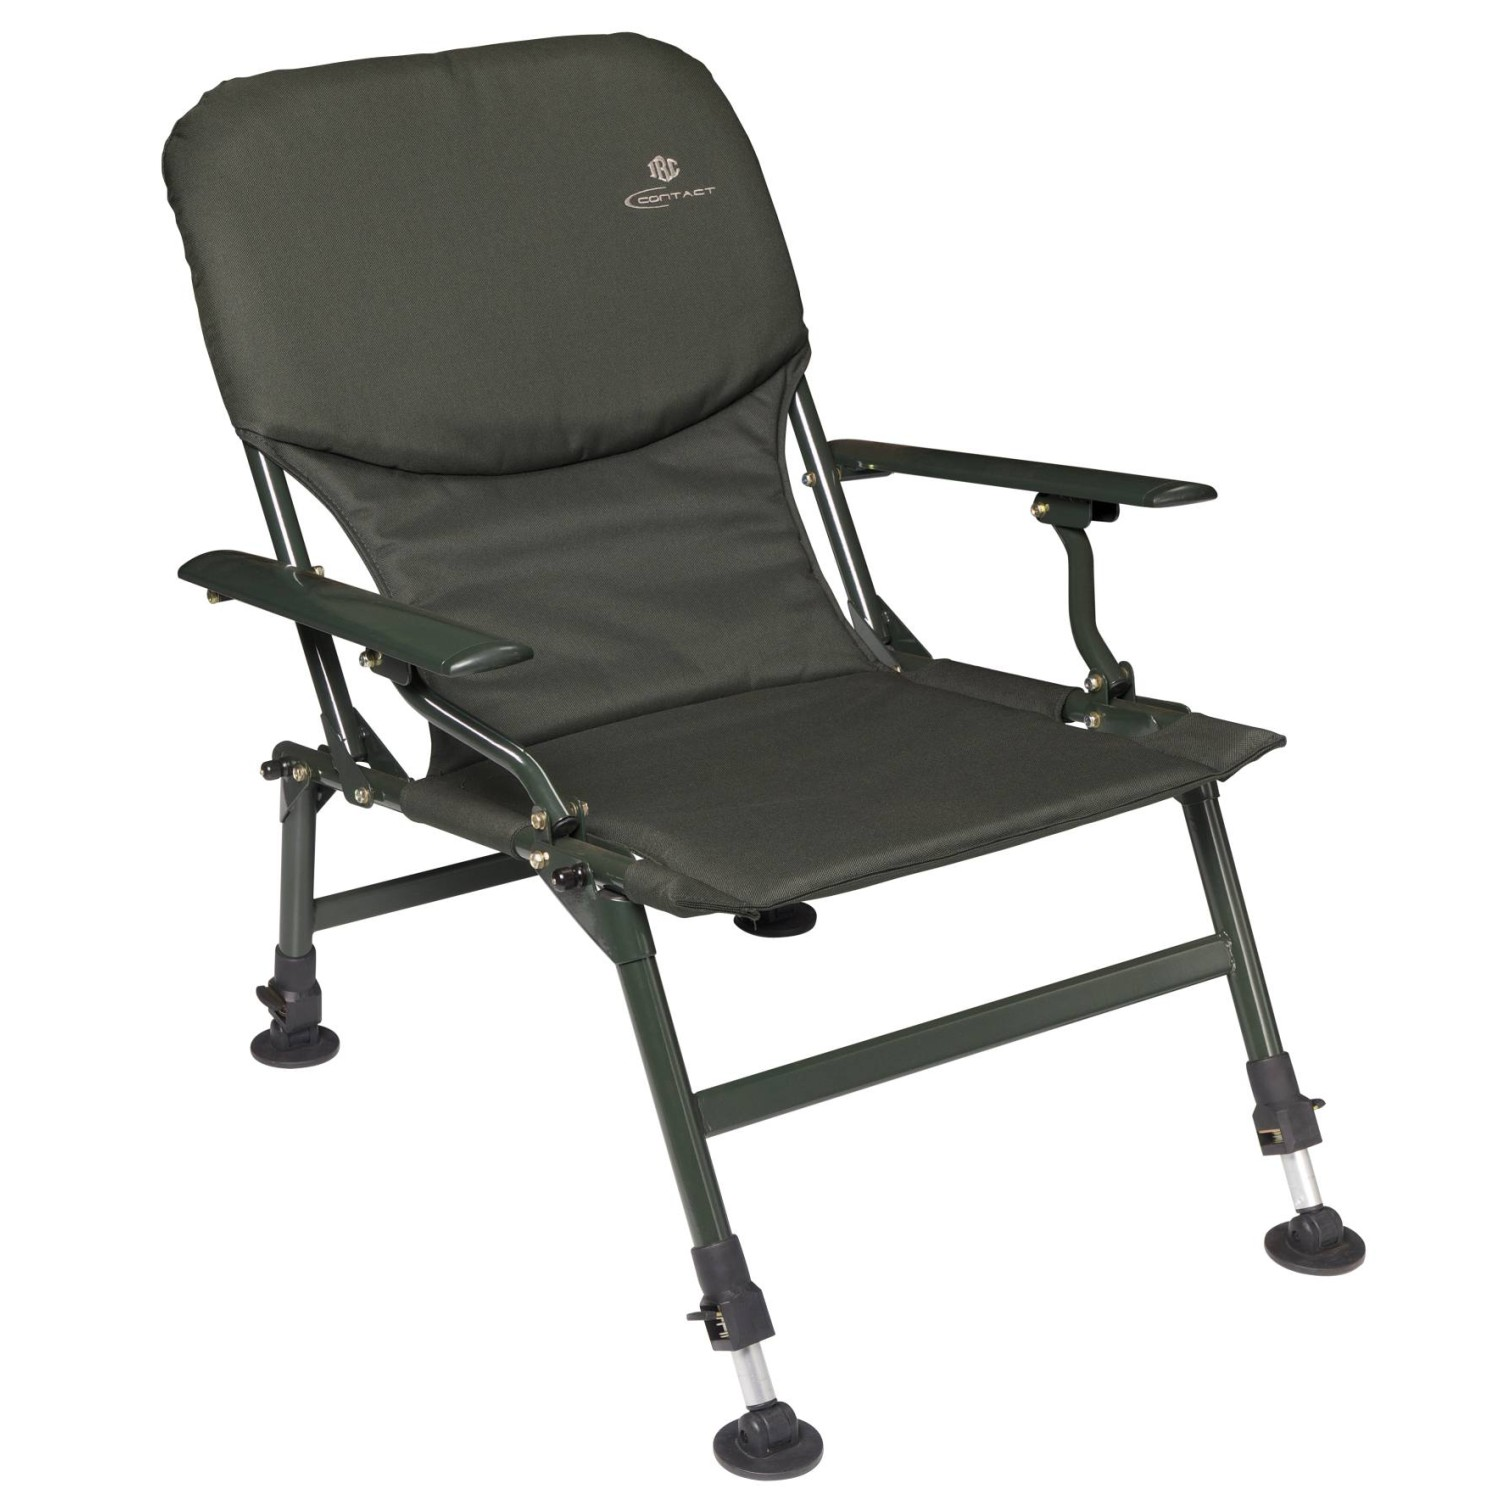 JRC Contact Chair with arms